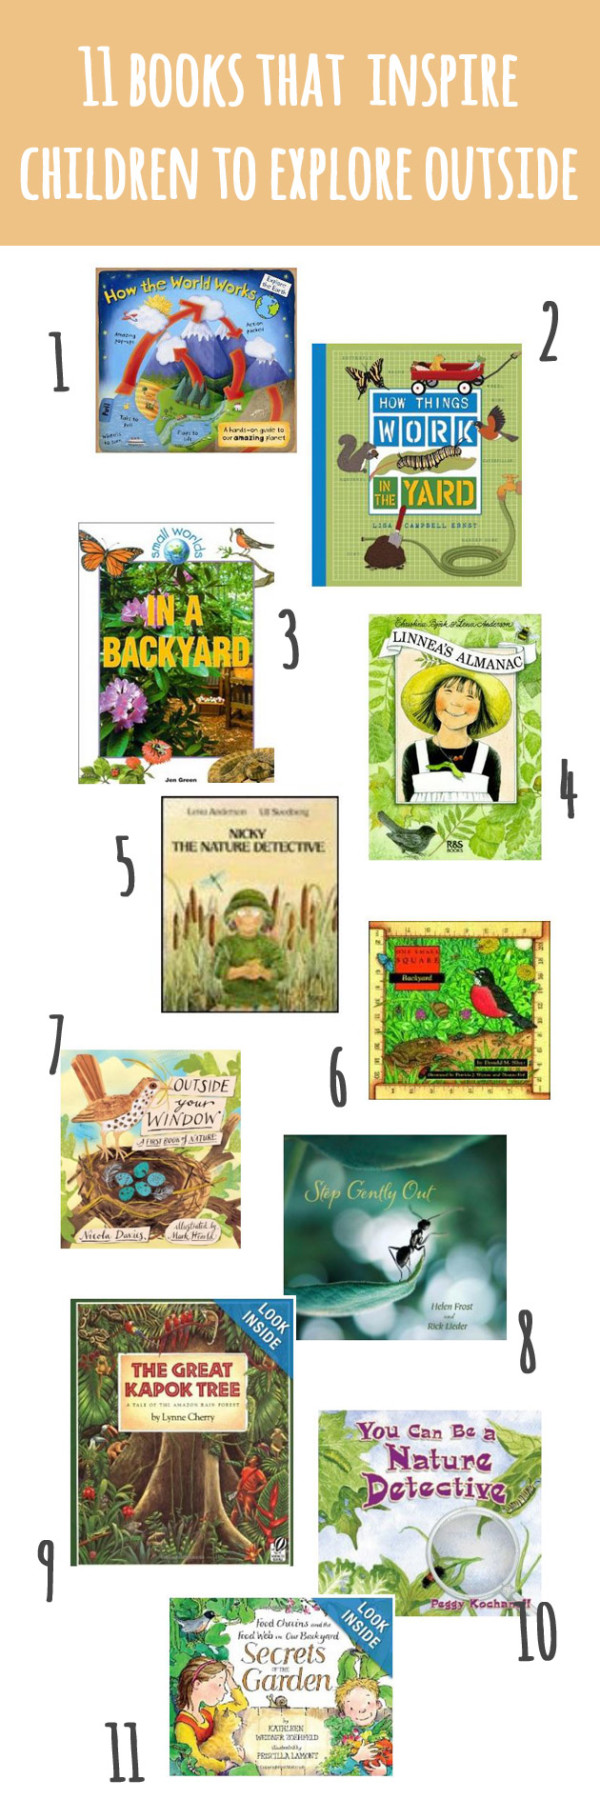 11 Picture Books that Inspire Children to Explore Outside